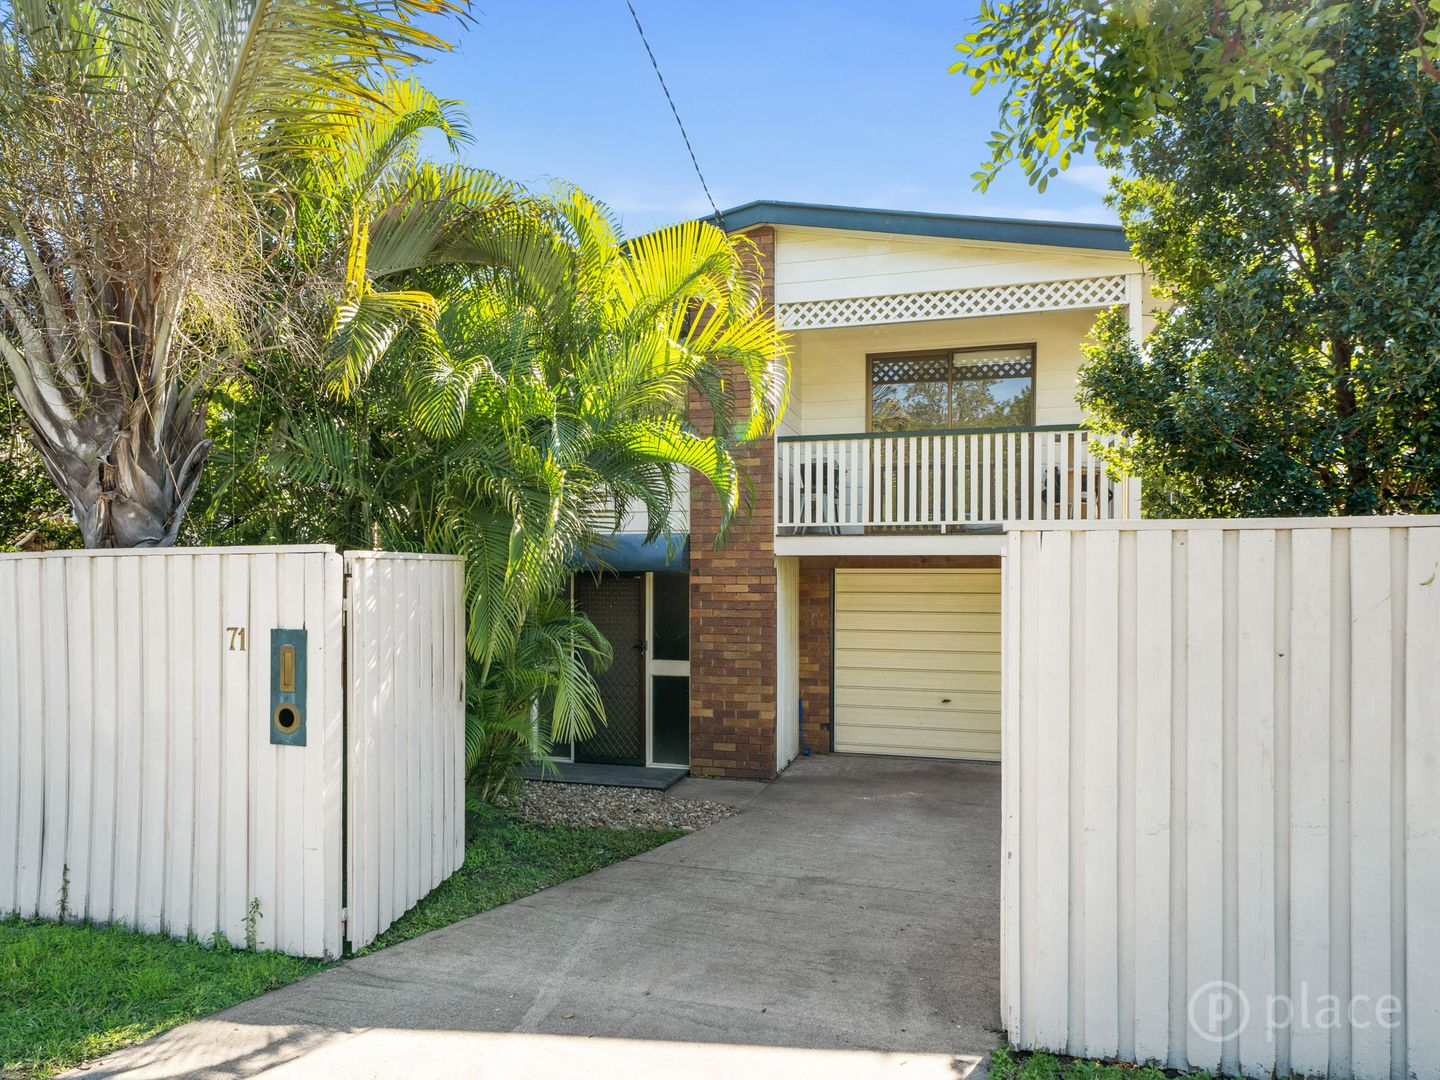 71 Albion Road, Albion QLD 4010, Image 0